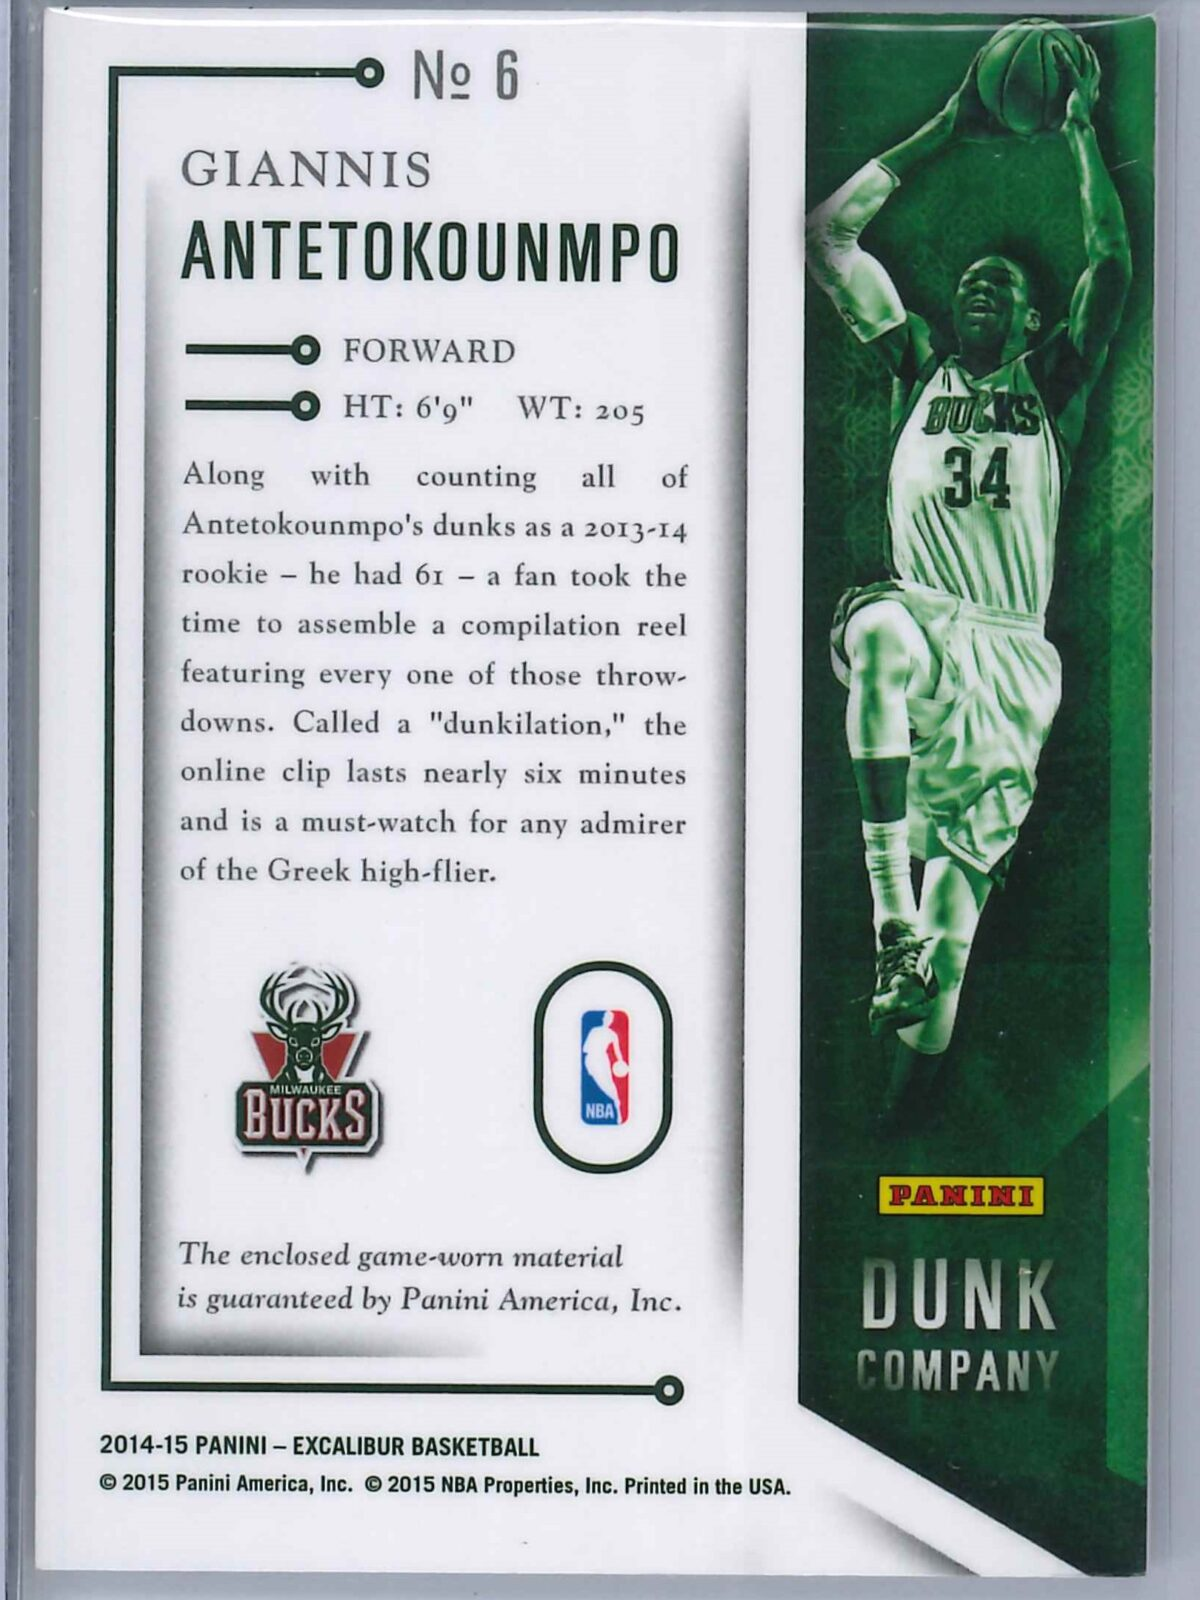 Giannis Antetokounmpo Panini Excalibur 2014-15 Dunk Co Patch 2nd Year